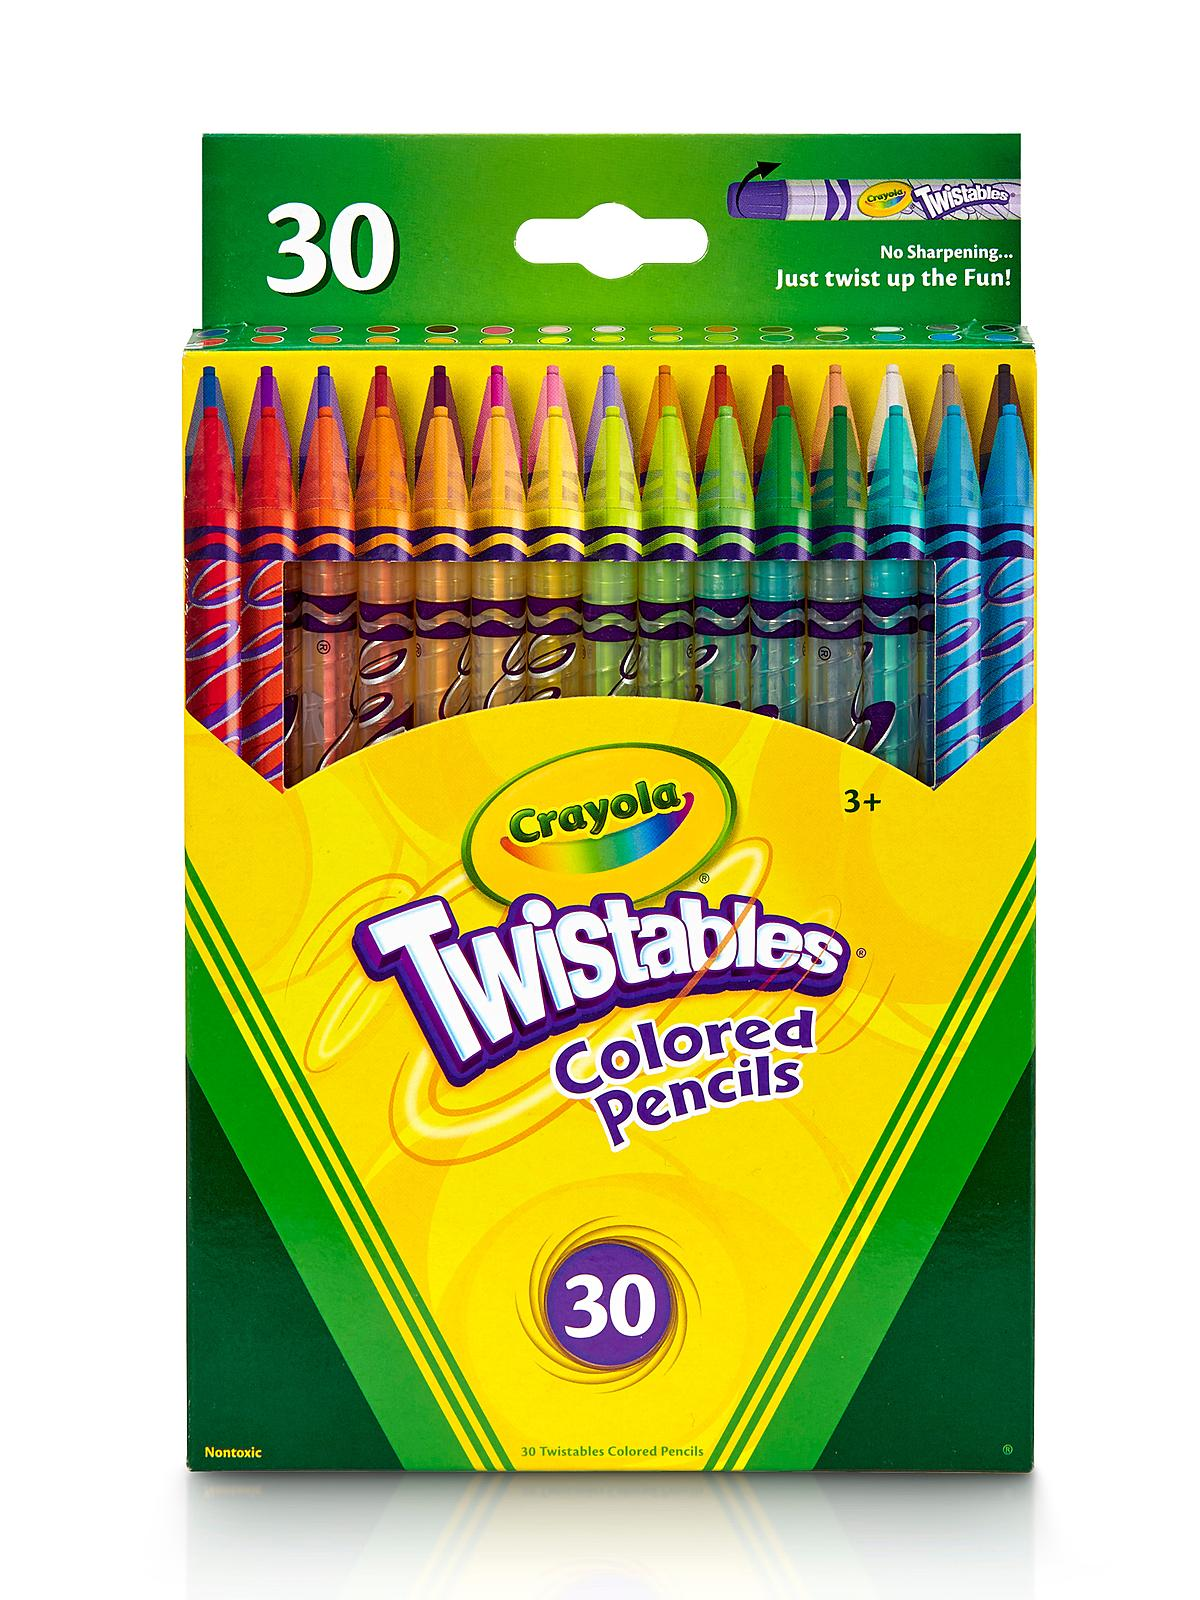 Twistables Colored Pencils